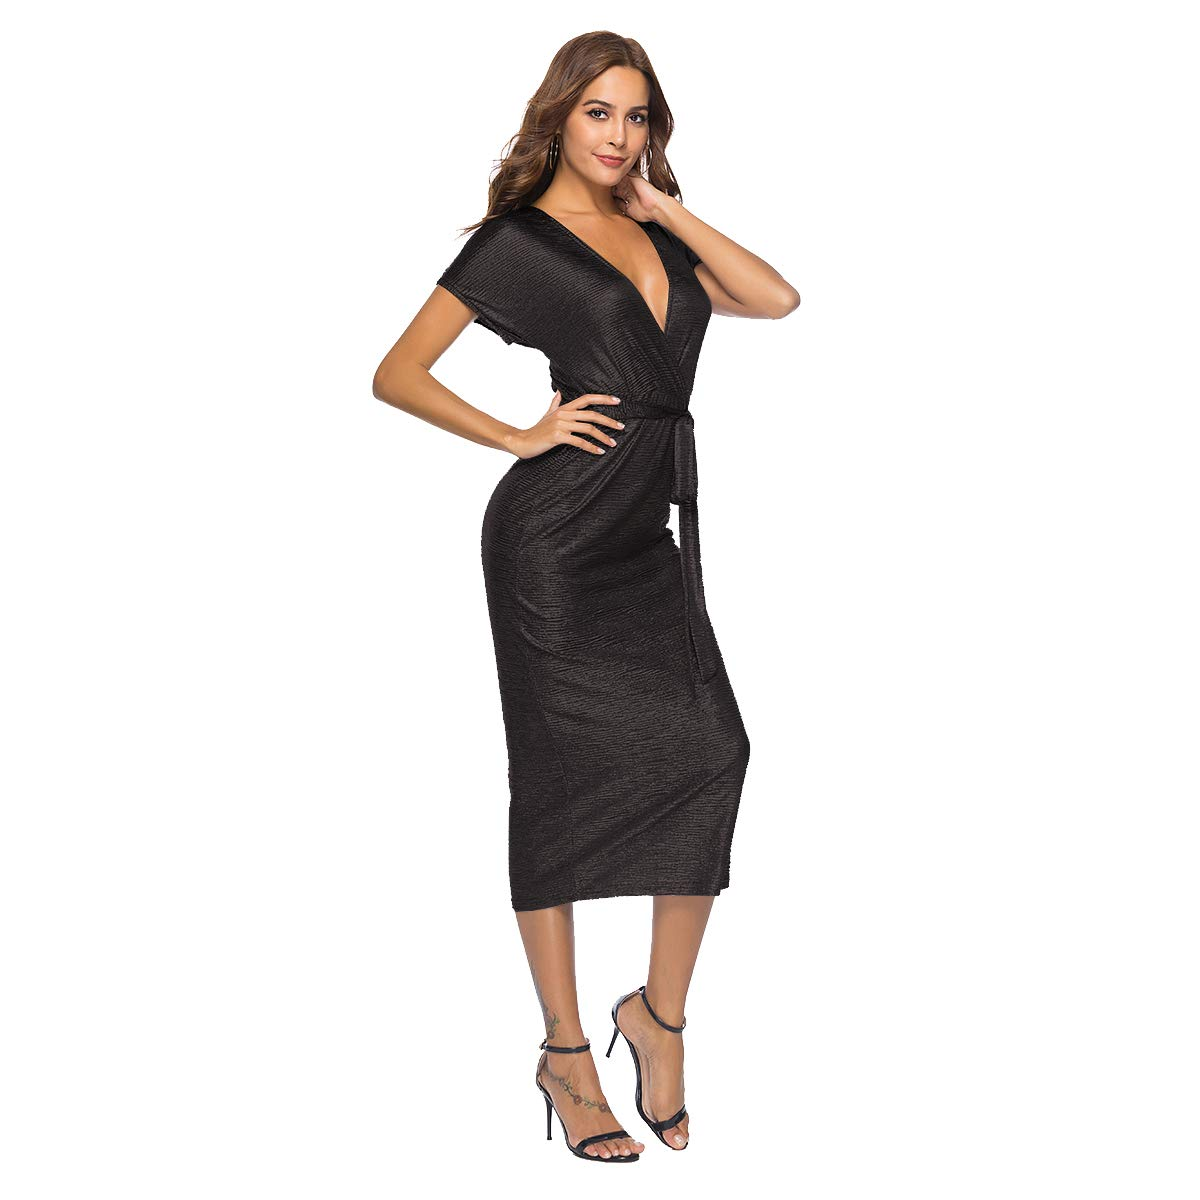 022472eed6 Zumine Glitter Deep V Neck Dress for Women Short Sleeve Tie Front Sexy  Party Dress at Amazon Women s Clothing store